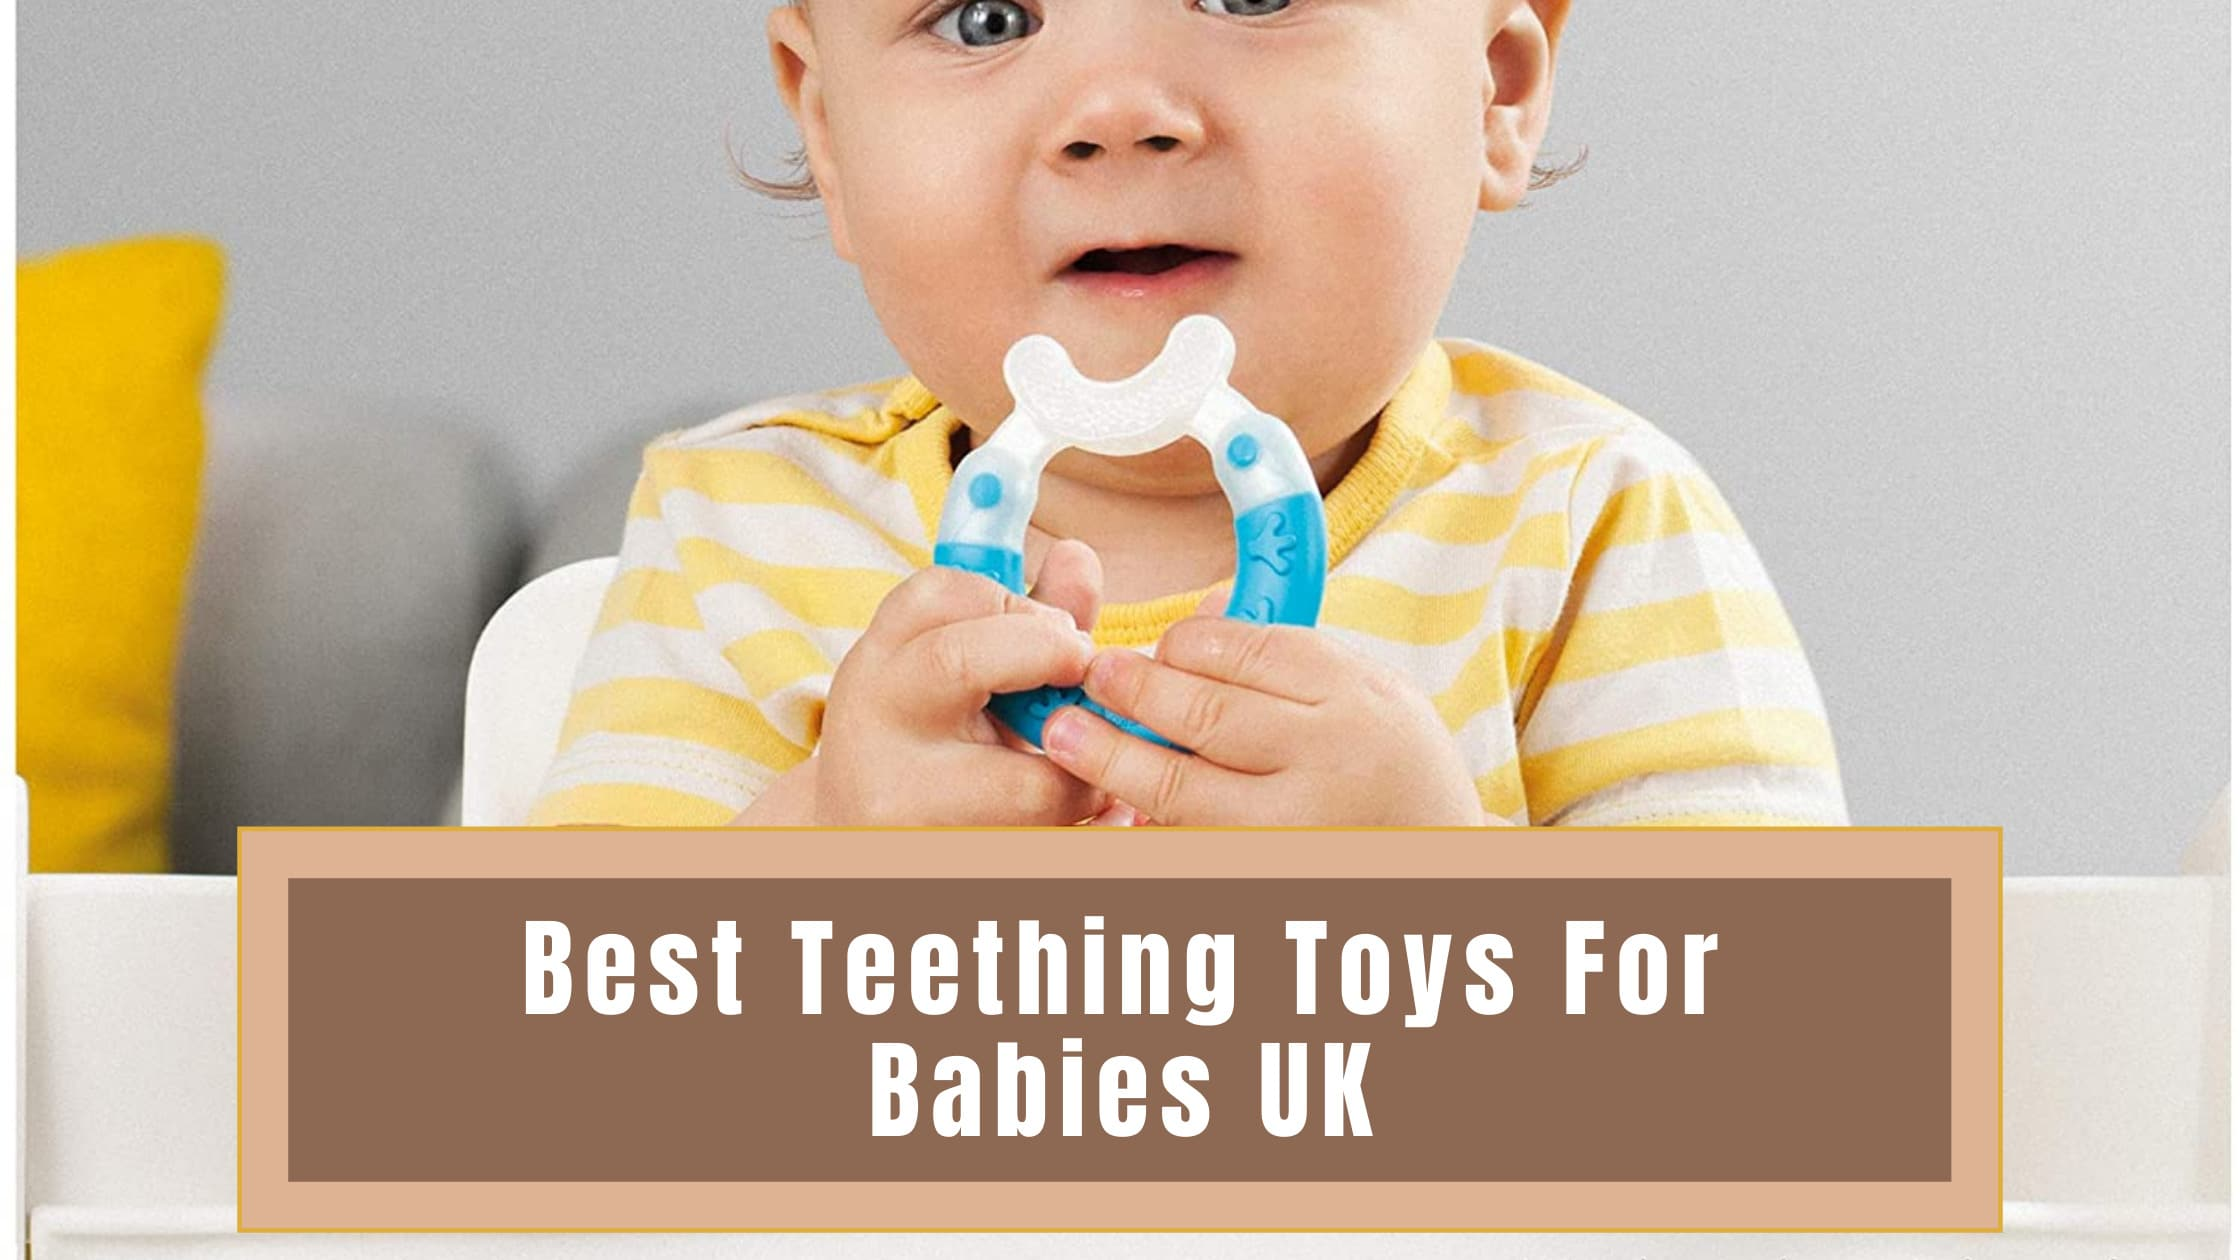 Best Teething Toys For Babies UK